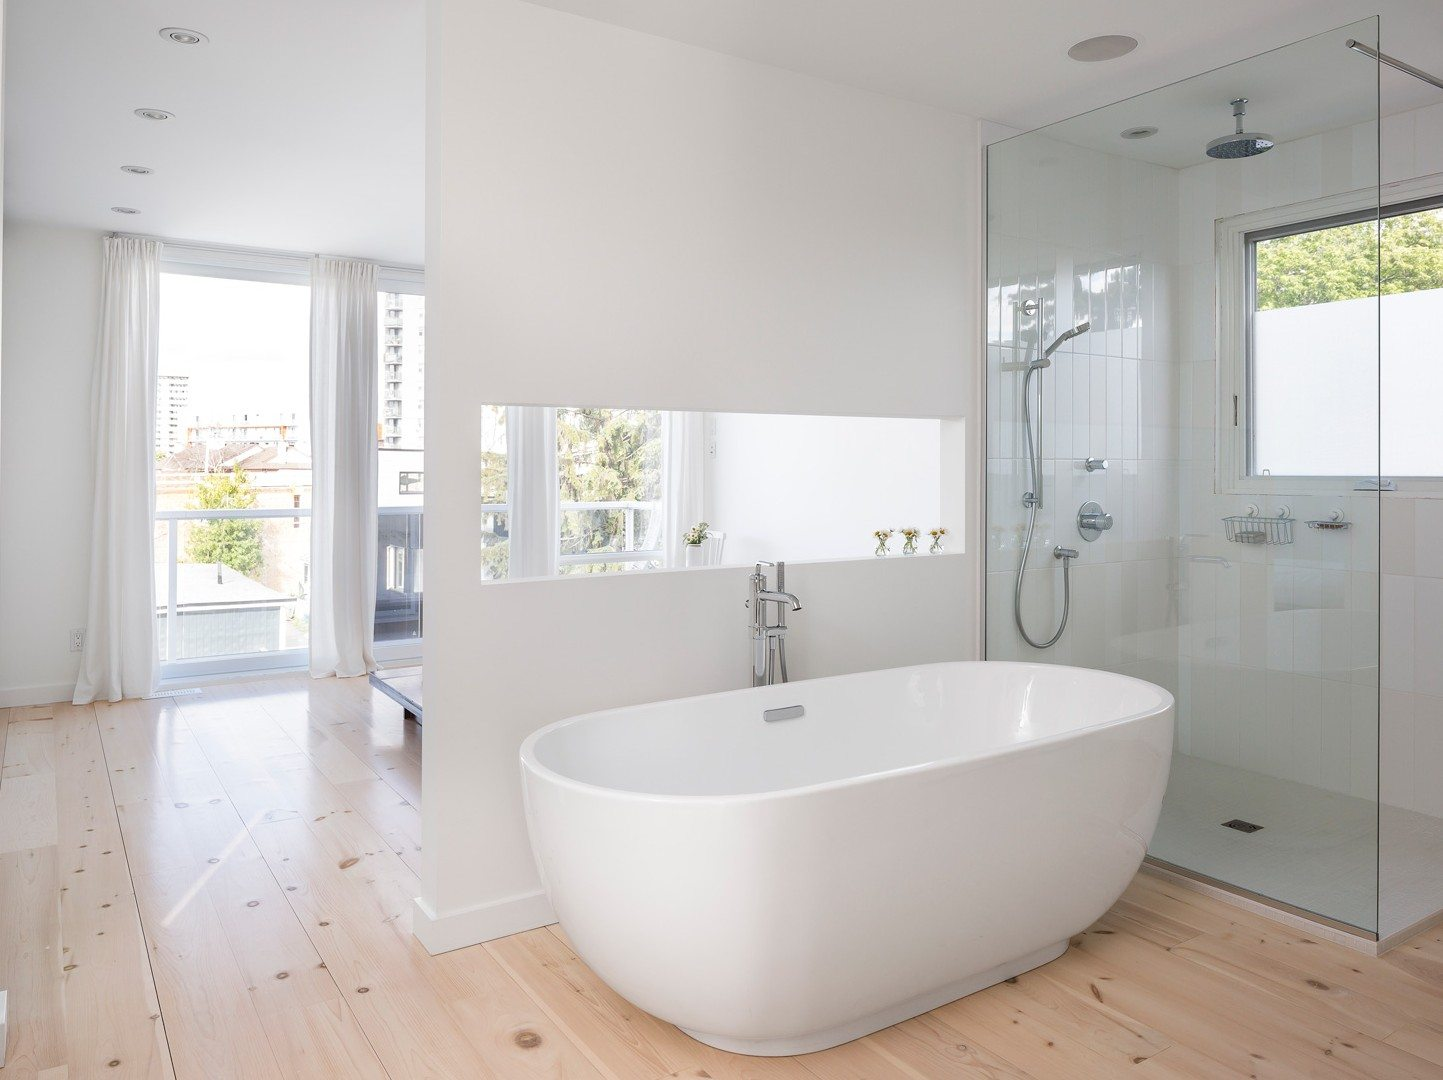 The bathroom illustrates the couple's aesthetic — clean but cozy. The gently rounded tub is set on warm pine floors, while the separate shower boasts tile. A powder room (not shown) allows for privacy. Photo: Doublespace Photography